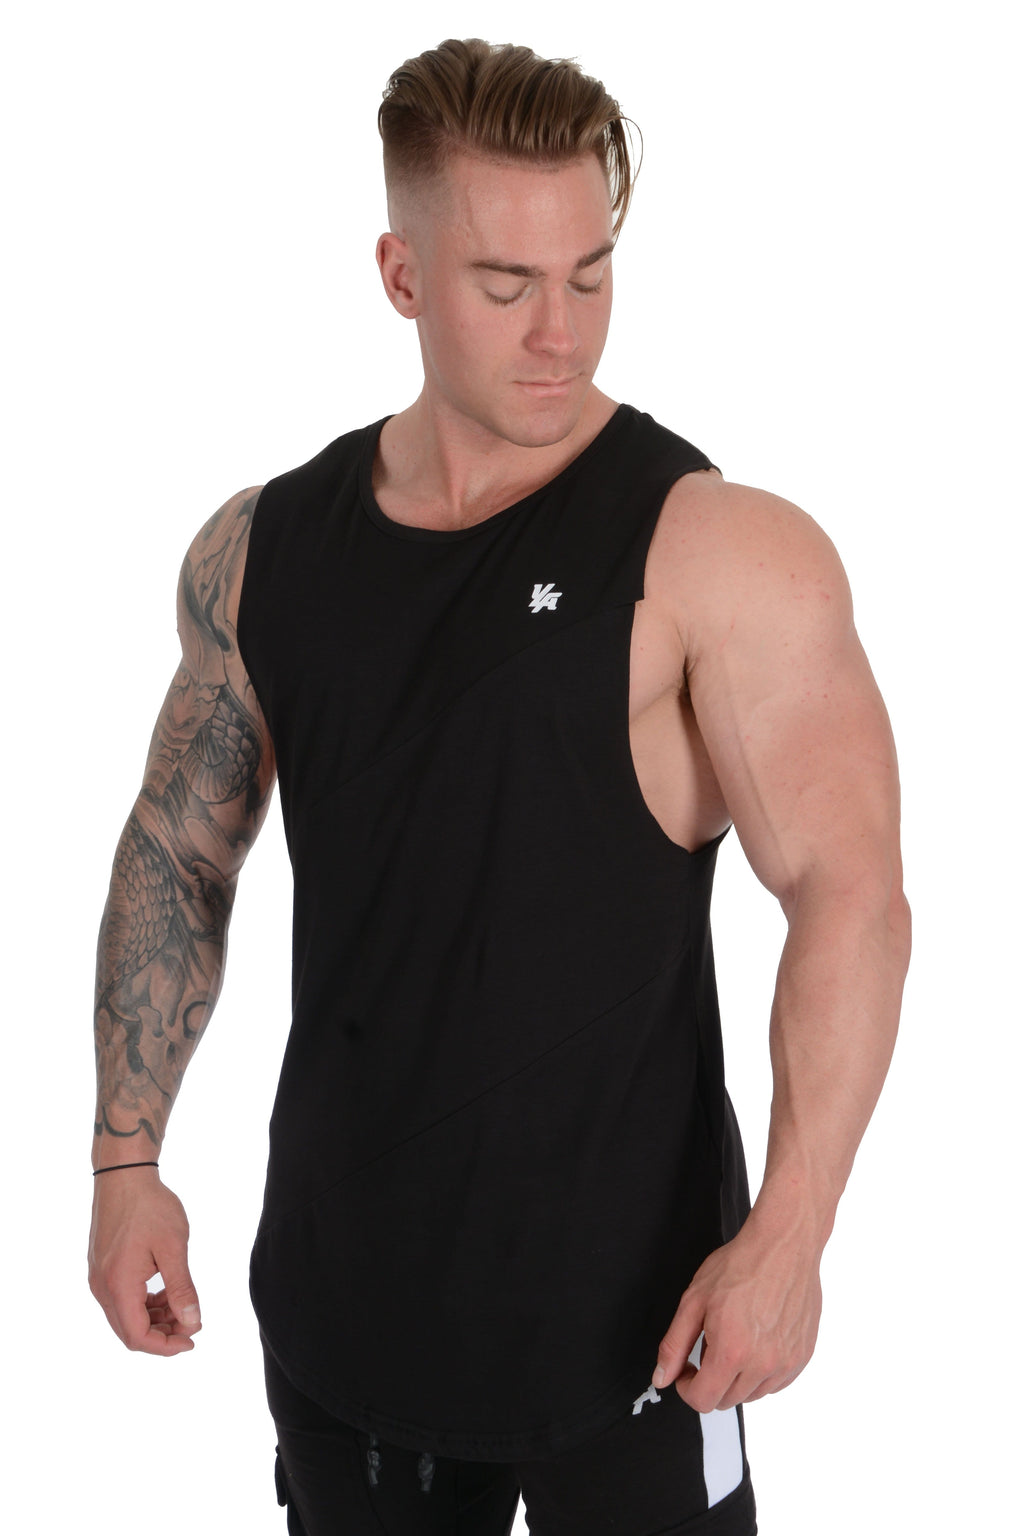 YoungLA Elongated Muscle Cut-Off Bodybuilding Tanks 306